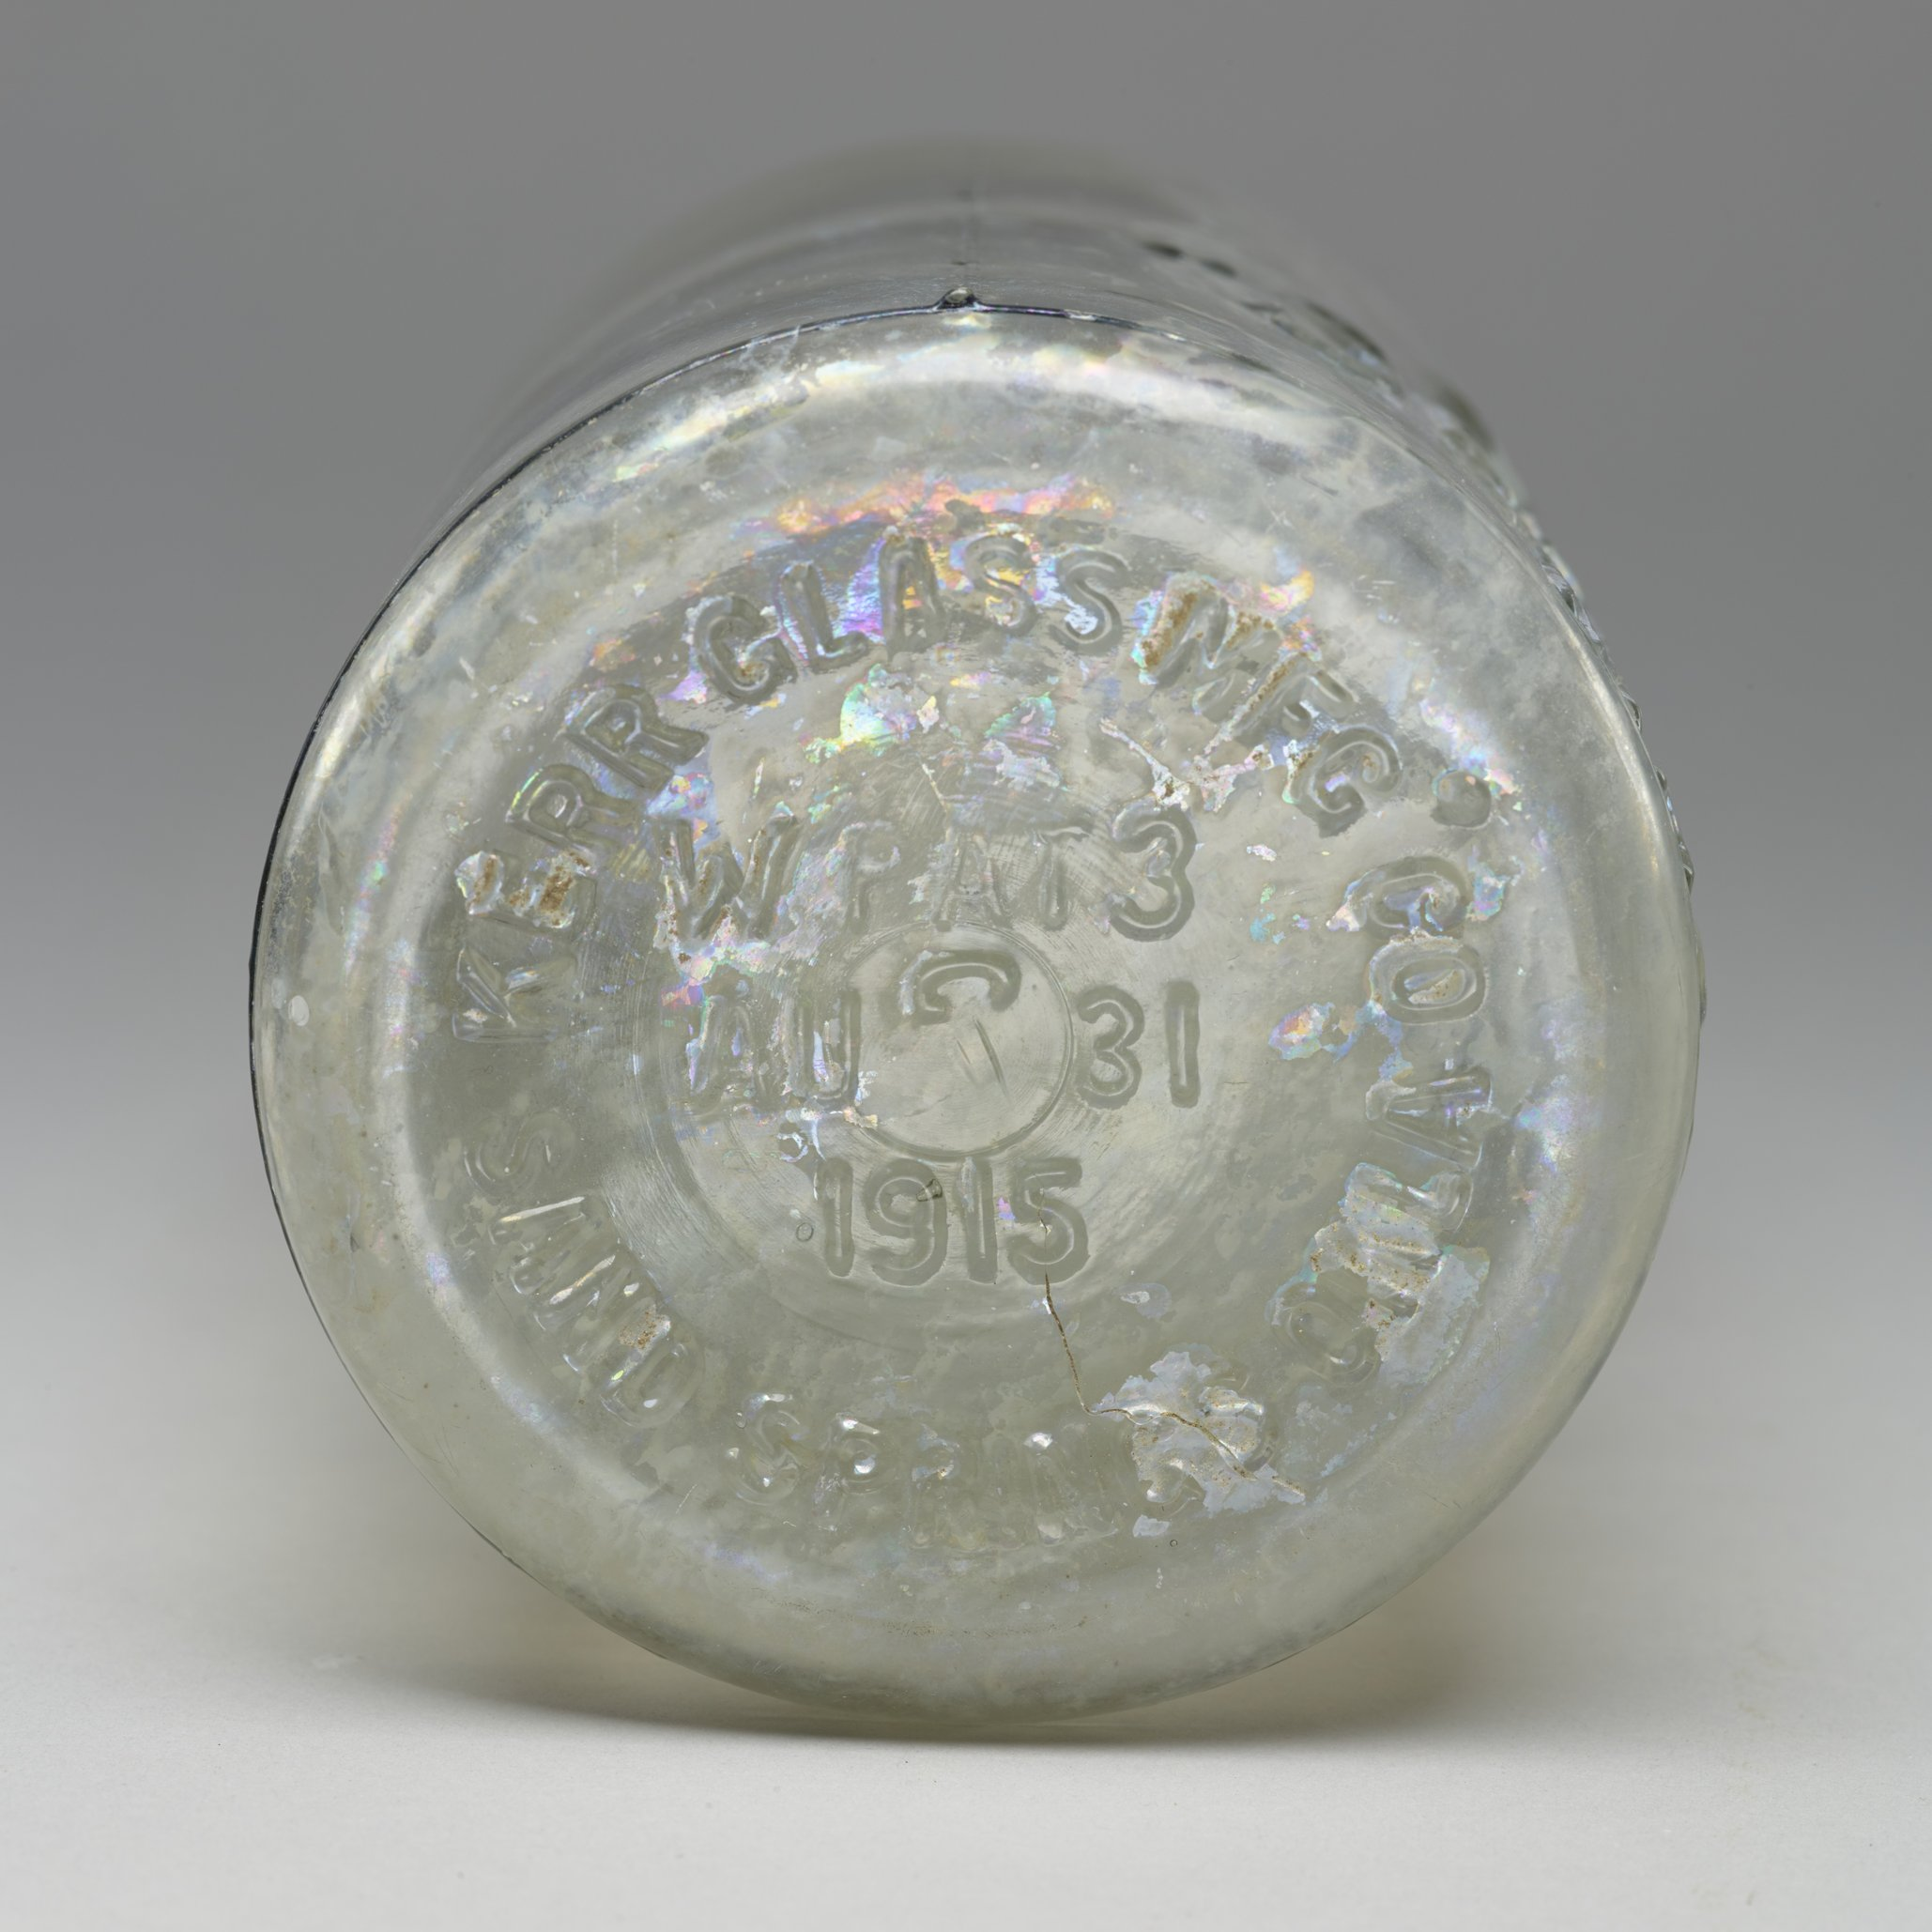 Kerr Canning Jar from the Thomas Johnson/Henry Williams Dugout Site, 14GH102 - 2